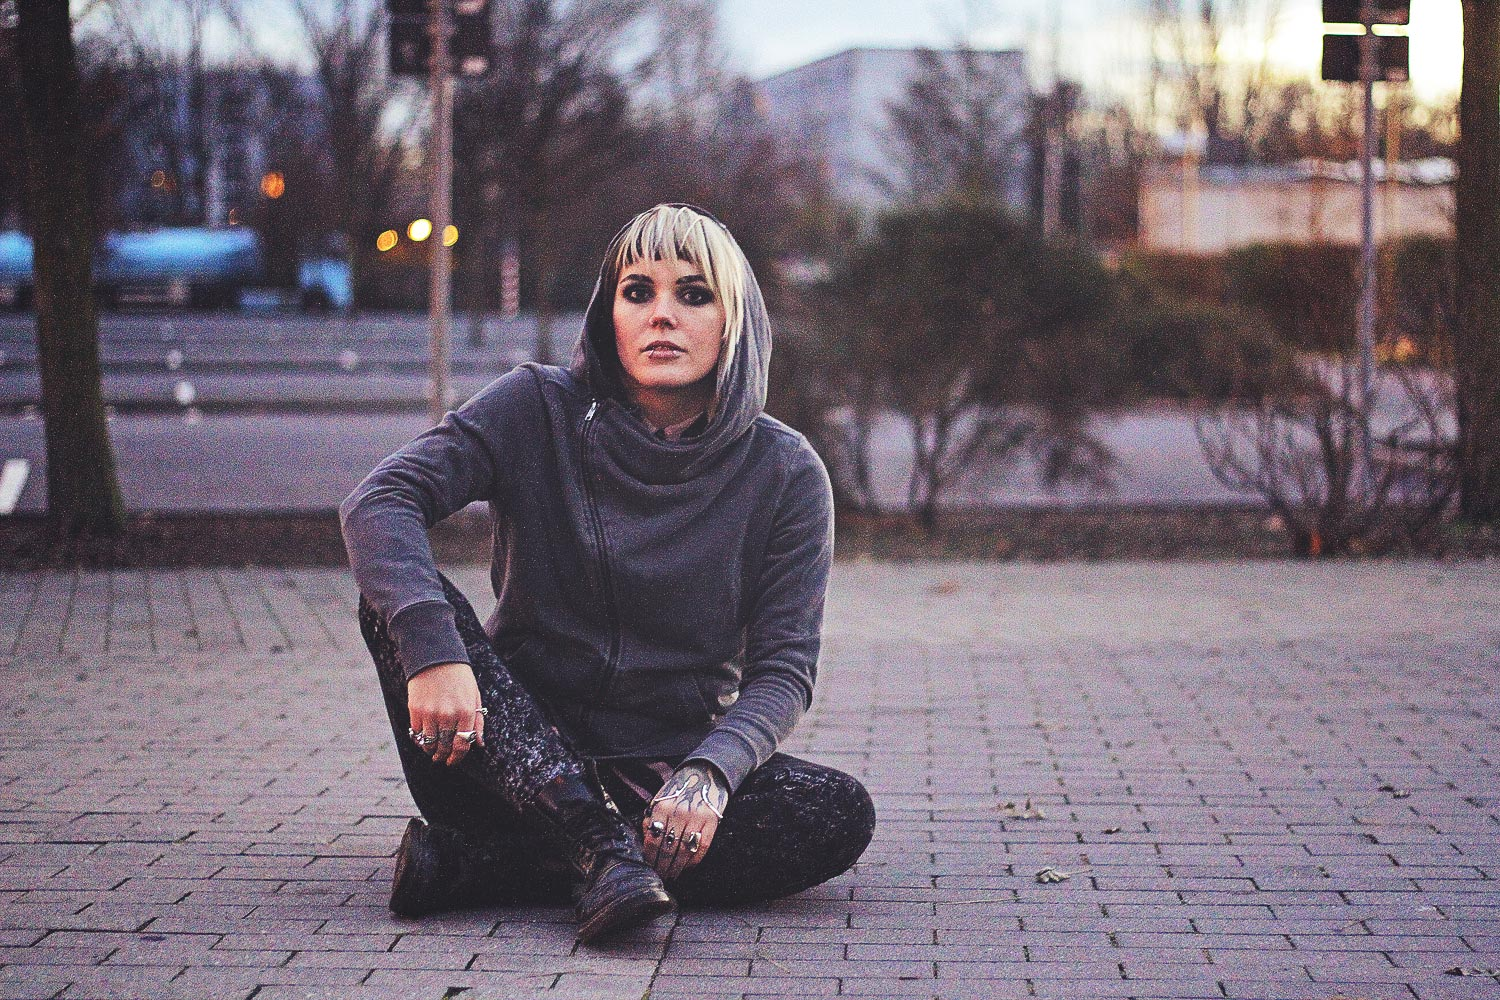 alternative, alternative fashion, alternative girl, alternative mode, altgirl, berlin, berlin fashion, berlin fashion blogger, berlin mode, berlin streetstyle, blogger, fashion blogger, girls with piercings, girls with tattoos, grunge, grunge fashion, grunge mode, mode, Punk, punk fashion, punk mode, punkgirl, punkmädchen, scenehair, snakebites, split hair, splithair, tattoomädchen, tattoo model, h&m, streifen, divided, grey, used, used look, rpped, acid wash, jeans, skinny, skinny jeans, boots, new yorker, dämmerung, parkplatz, bokeh, portrait, longbluse, bluse, long top, longshirt doc martens, docs, wasserfallkragen, kapuze